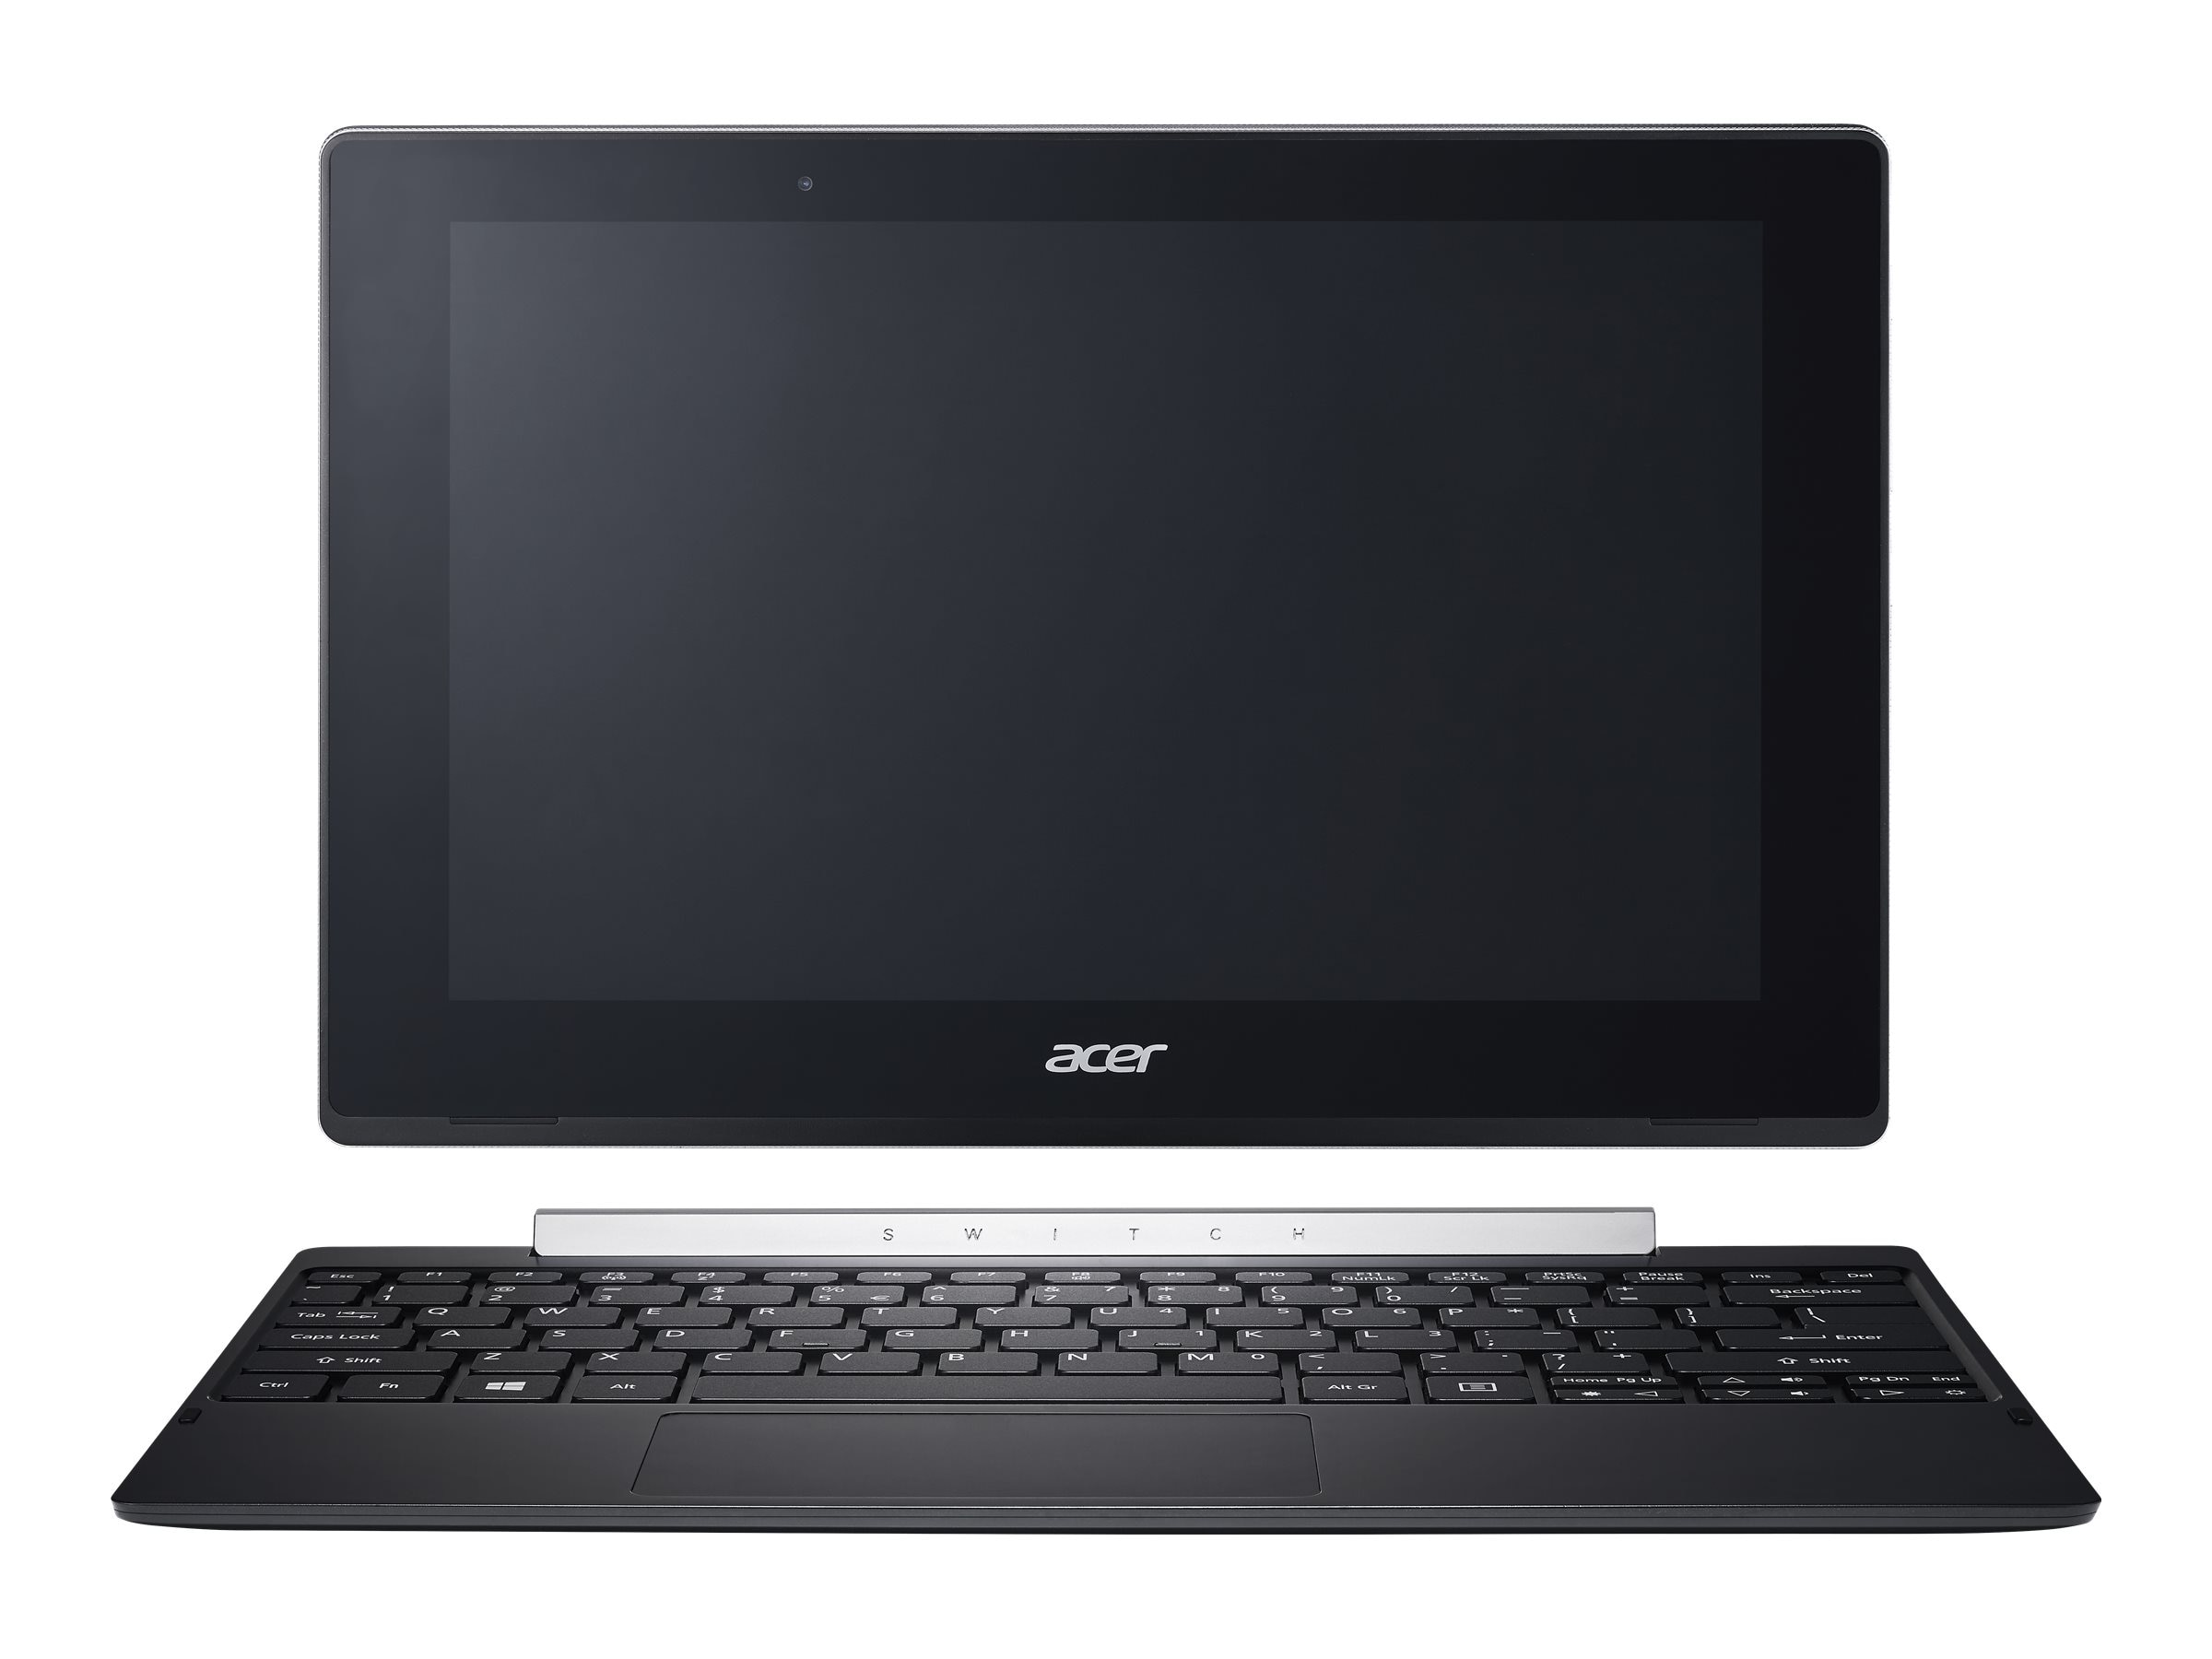 Acer NT.LCVAA.001 Image 5